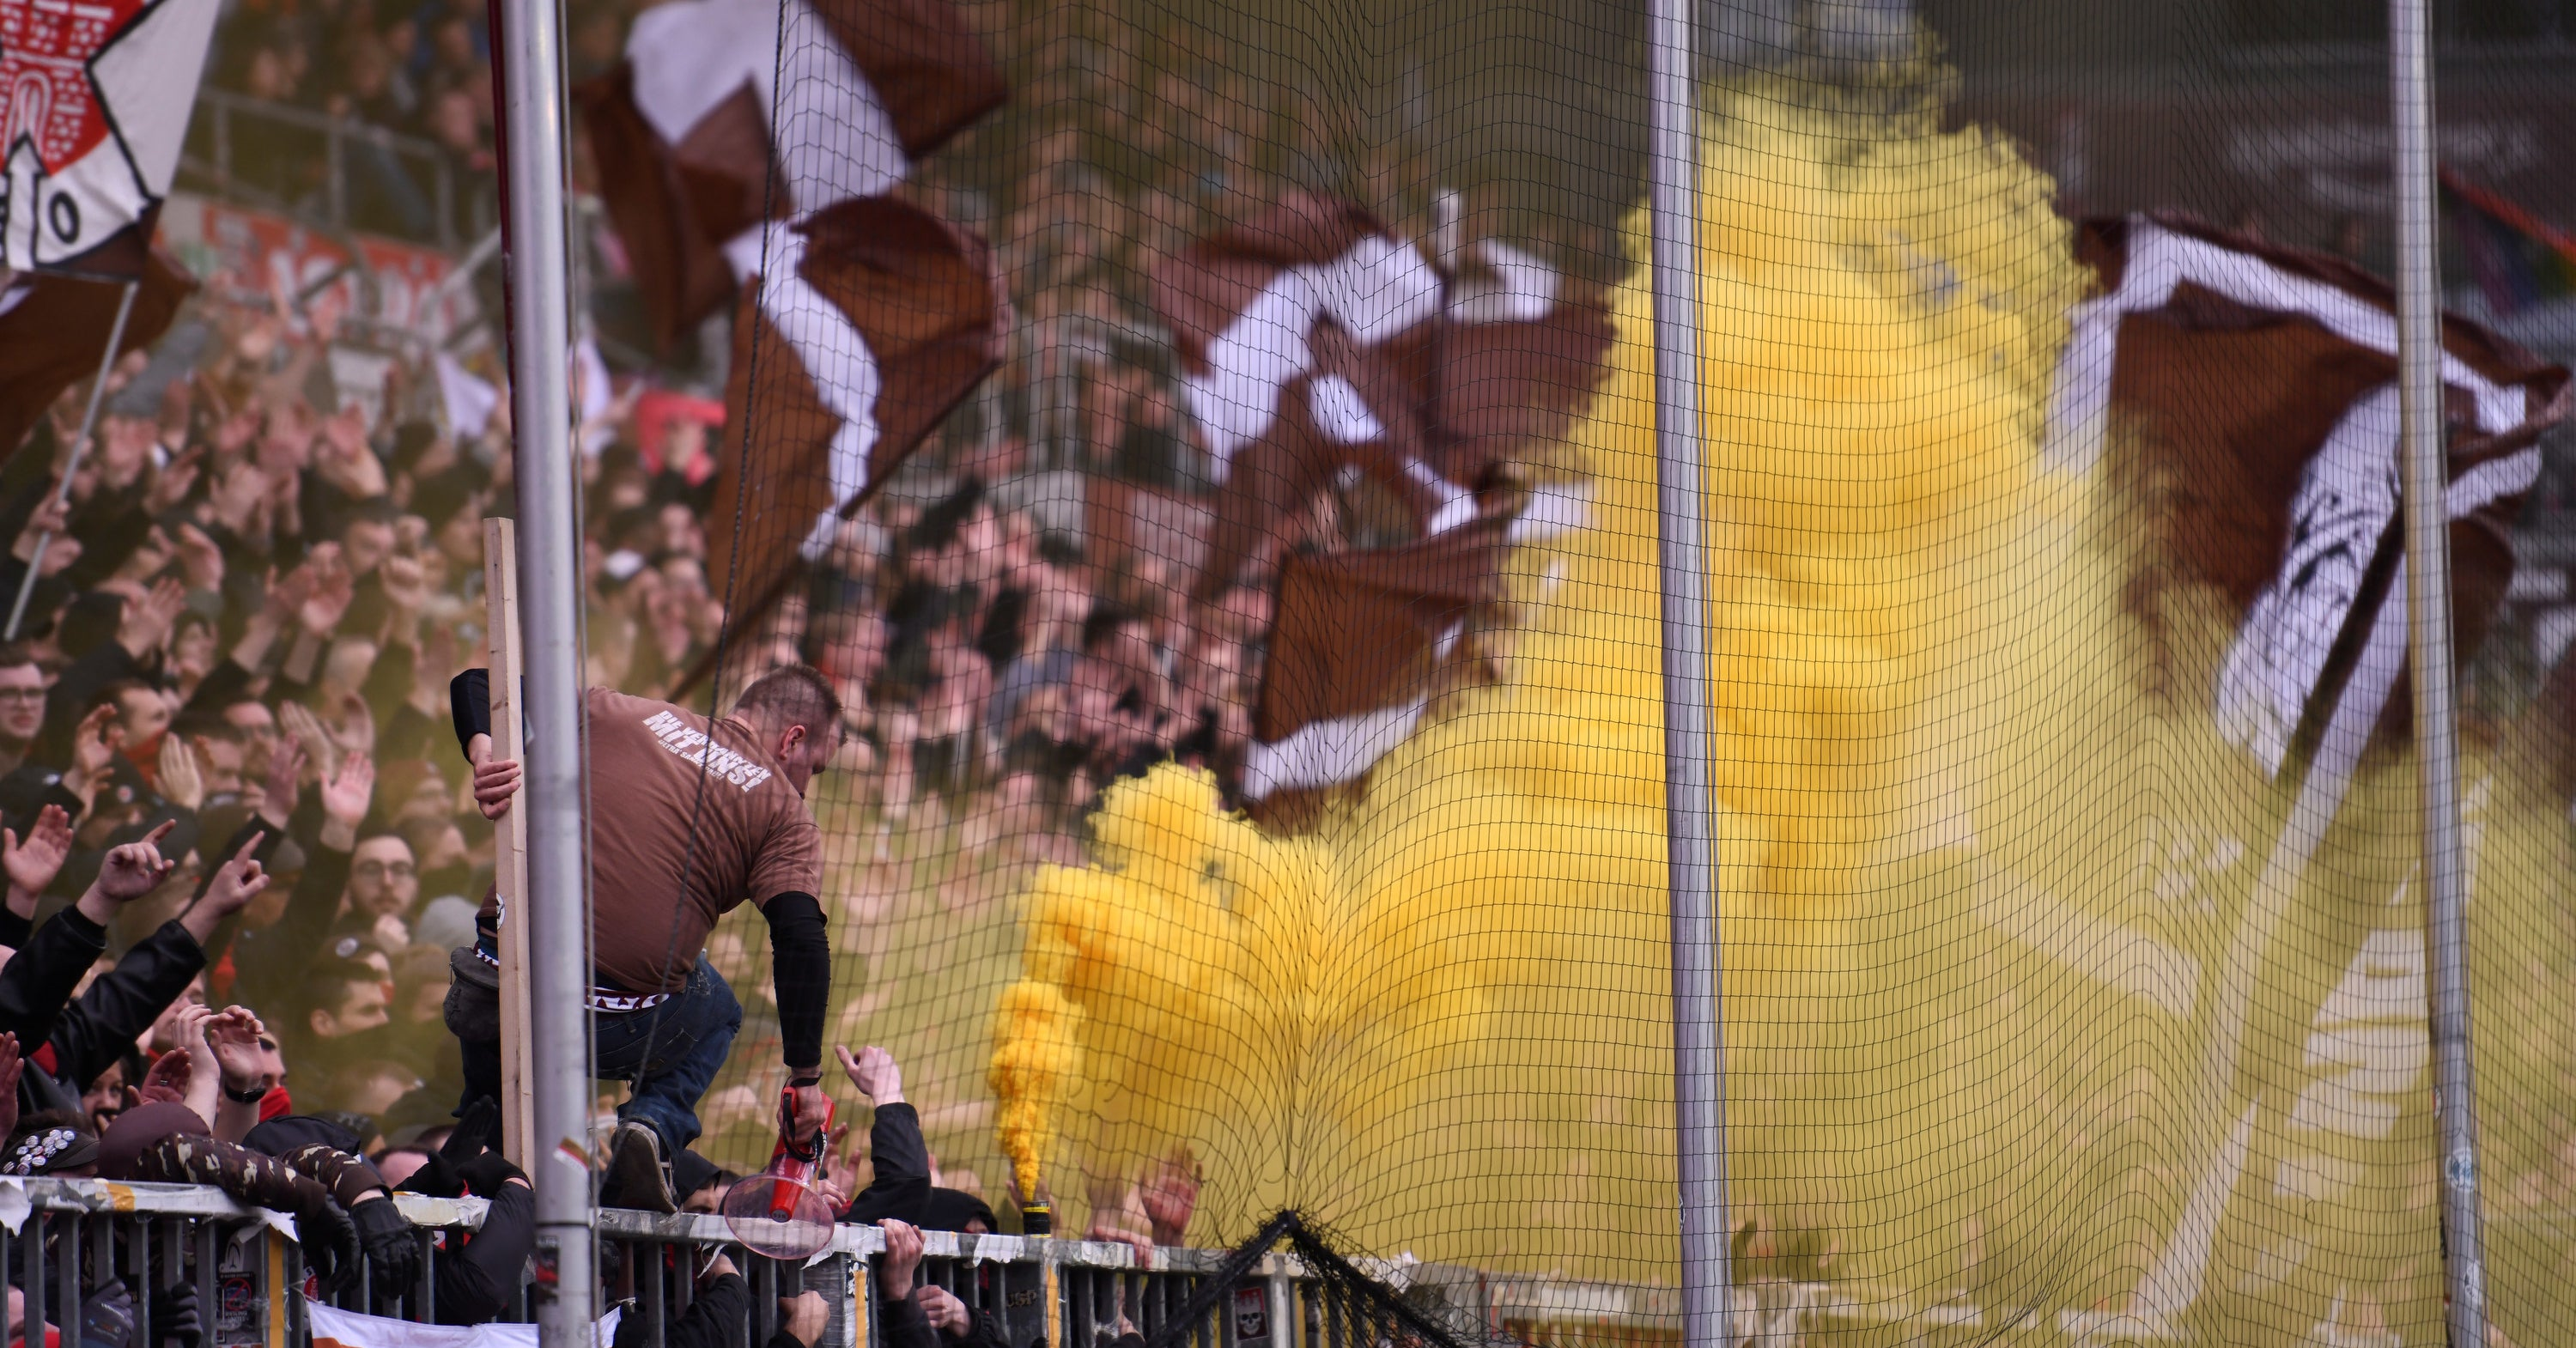 A German Football Club Is Formally Asking The UK Counter-Terror Police Why It Was Put On A Training Guide